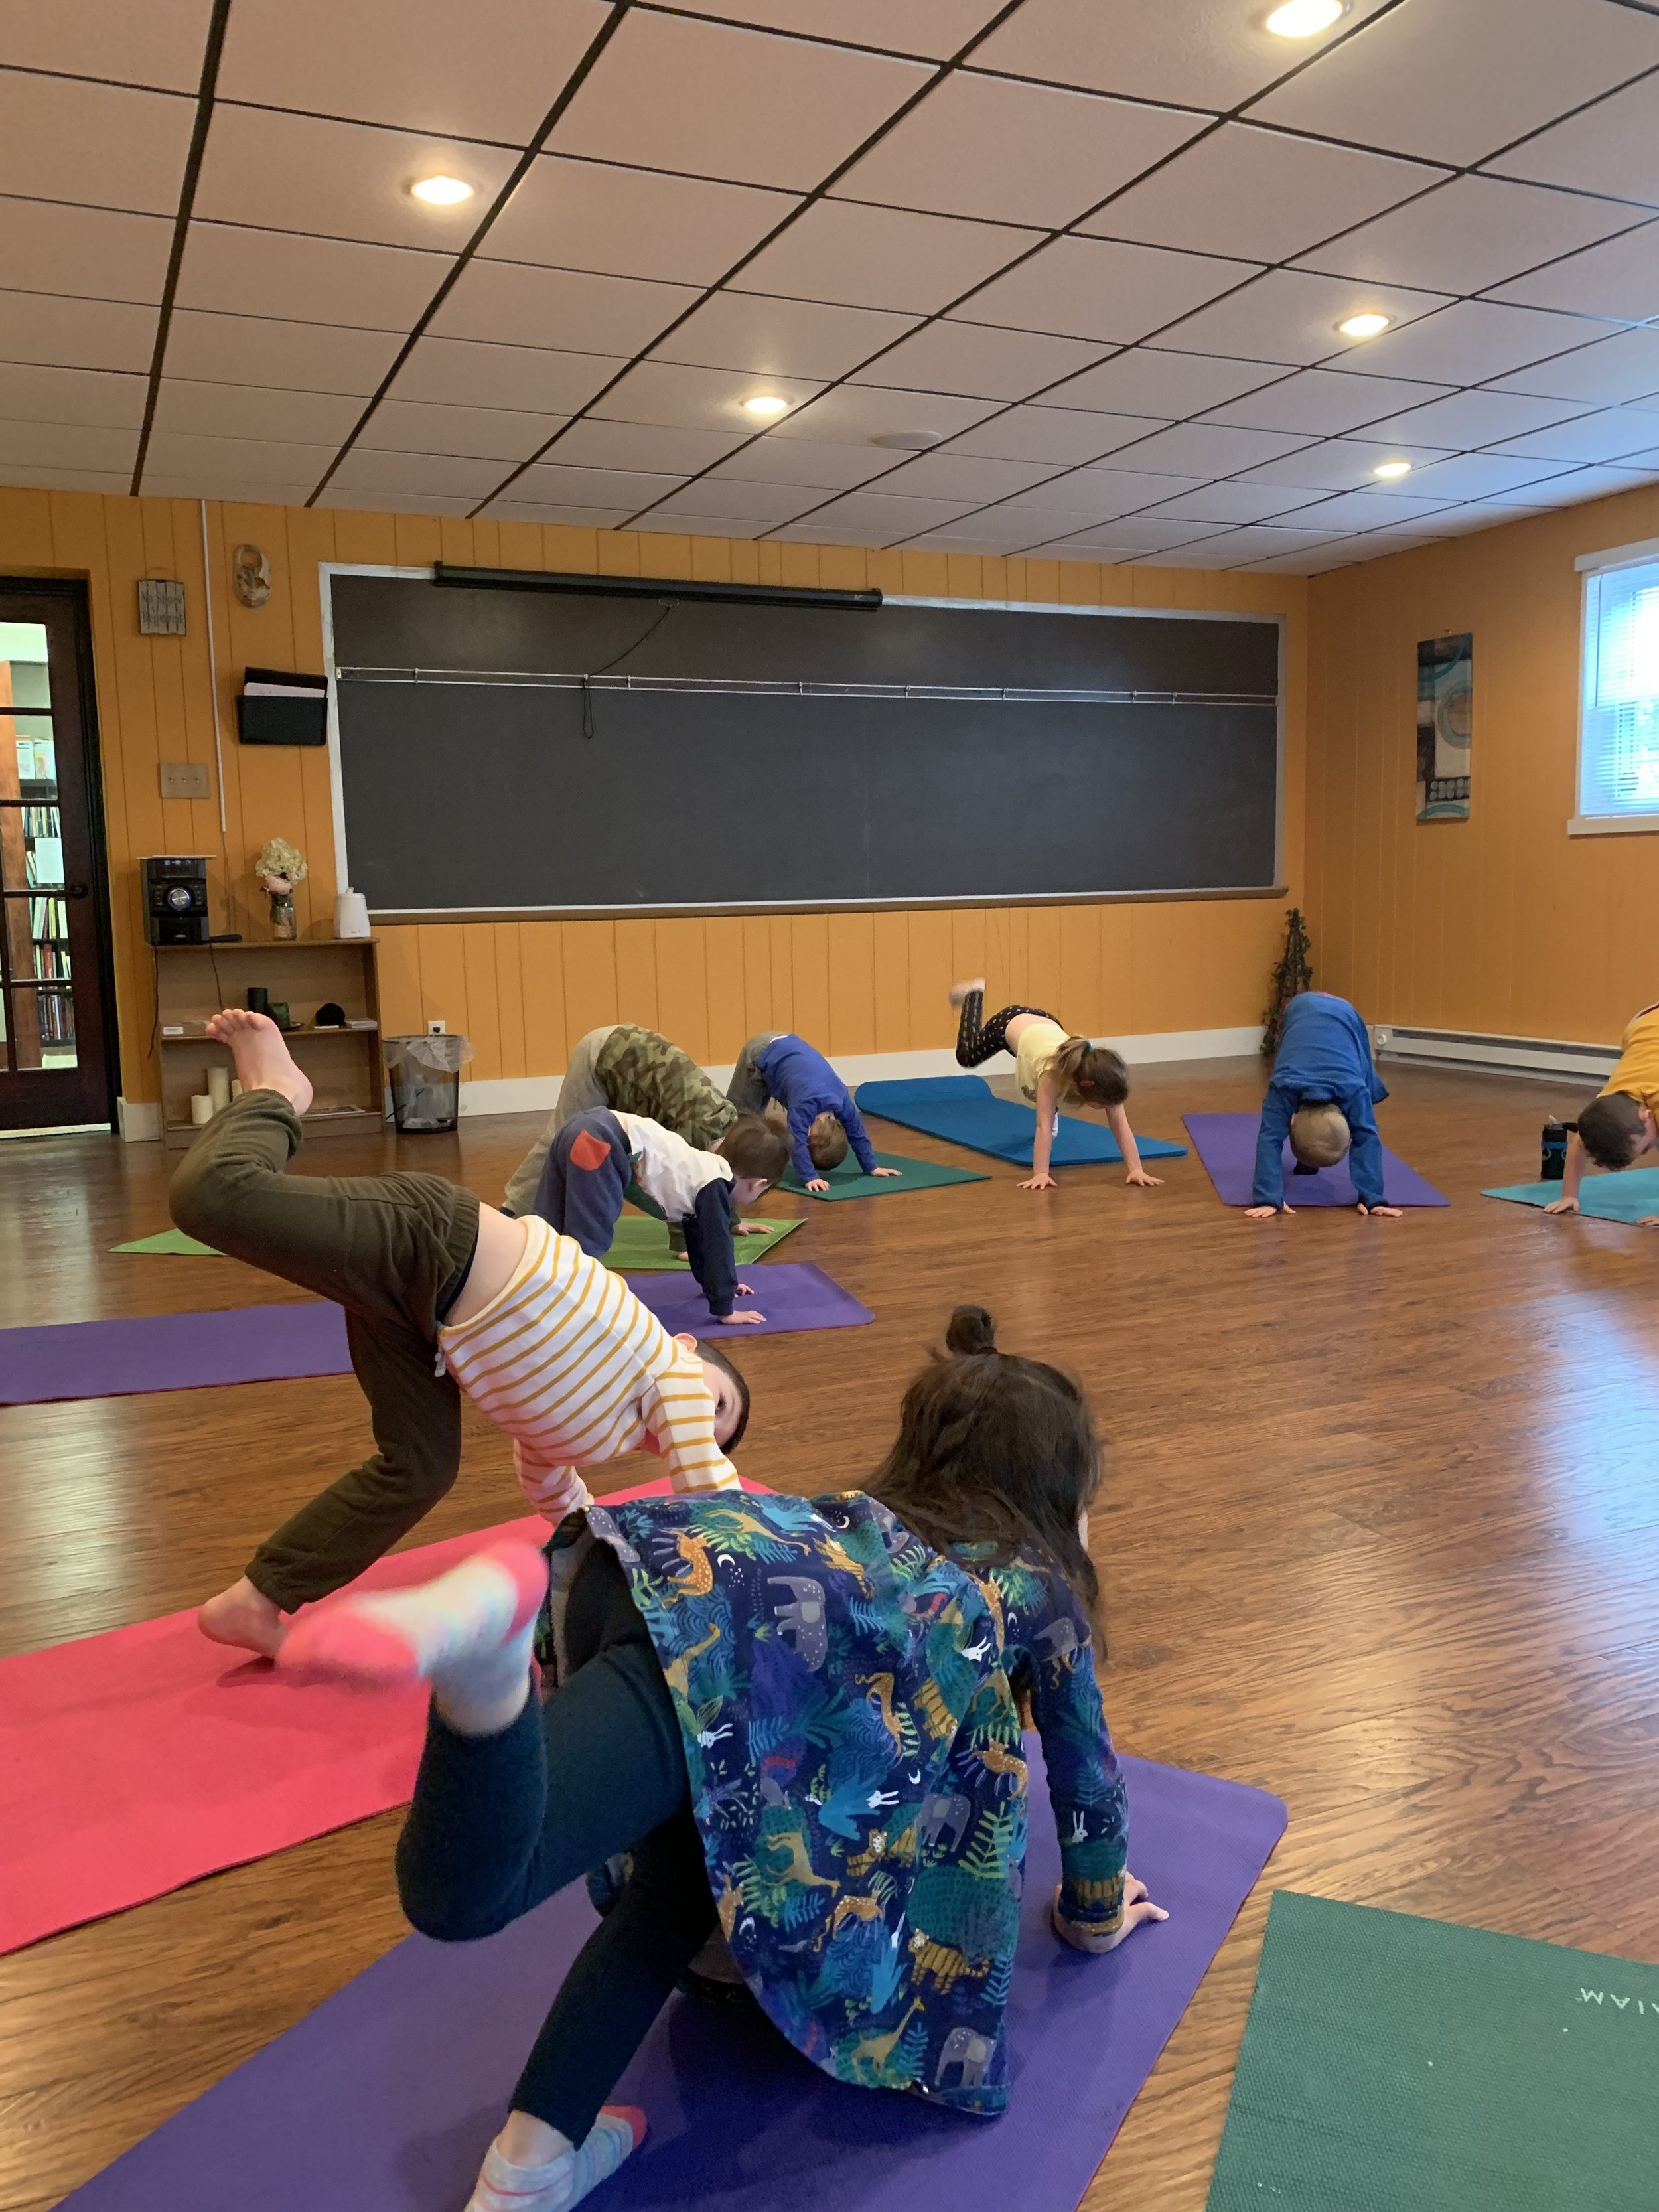 Super job from these young yogis — big strength to accomplish these poses!